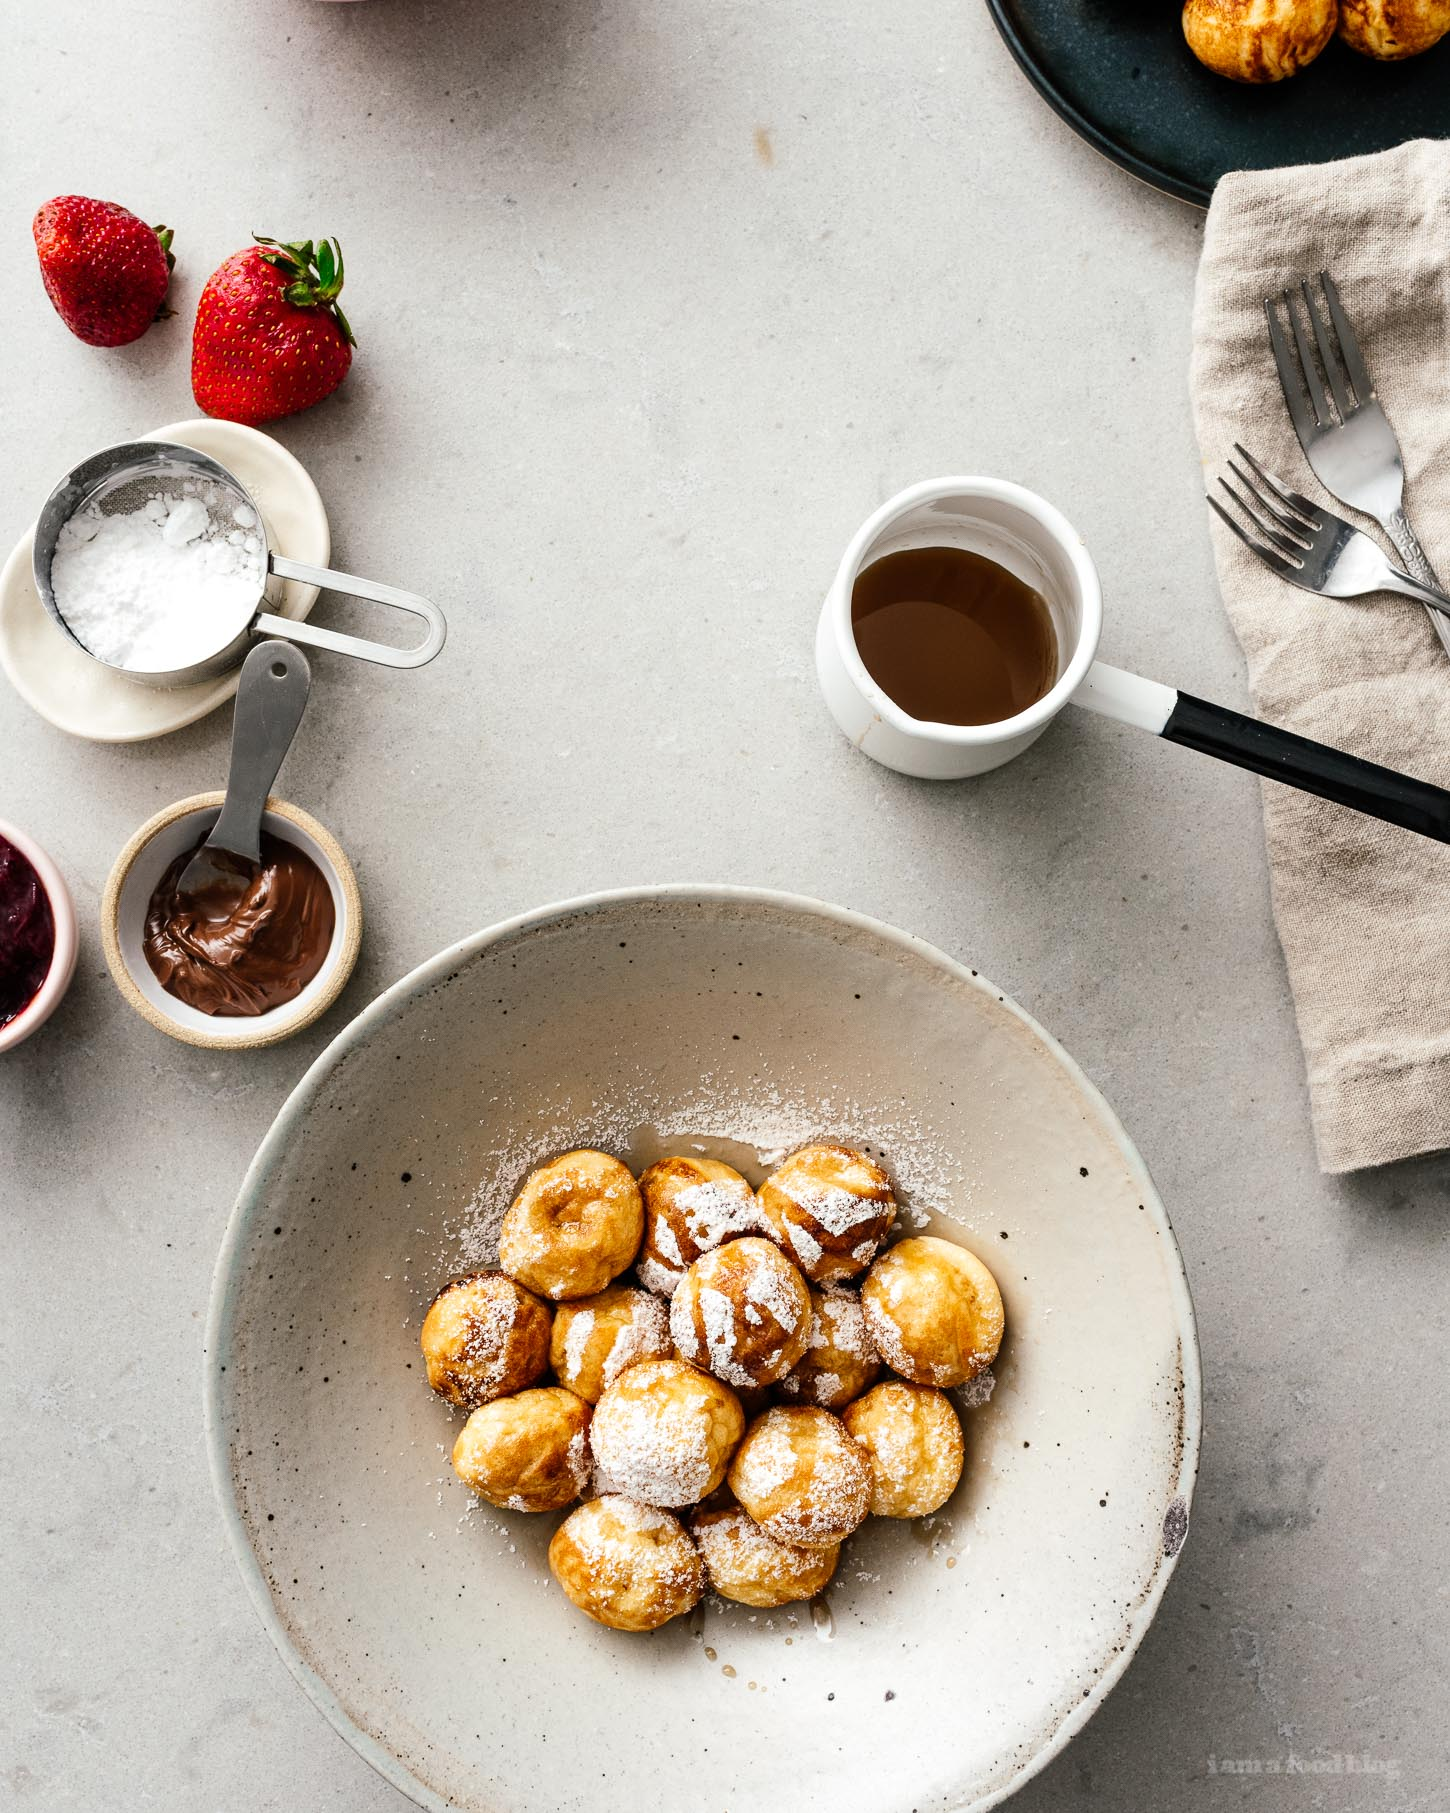 Make Danish aebleskiver at home for the ultimate brunch! Pancakes never looked so cute :) #pancakes #brunch #breakfast #recipes #brunchrecipes #cutefood #pancakeballs #aebleskiver #danish